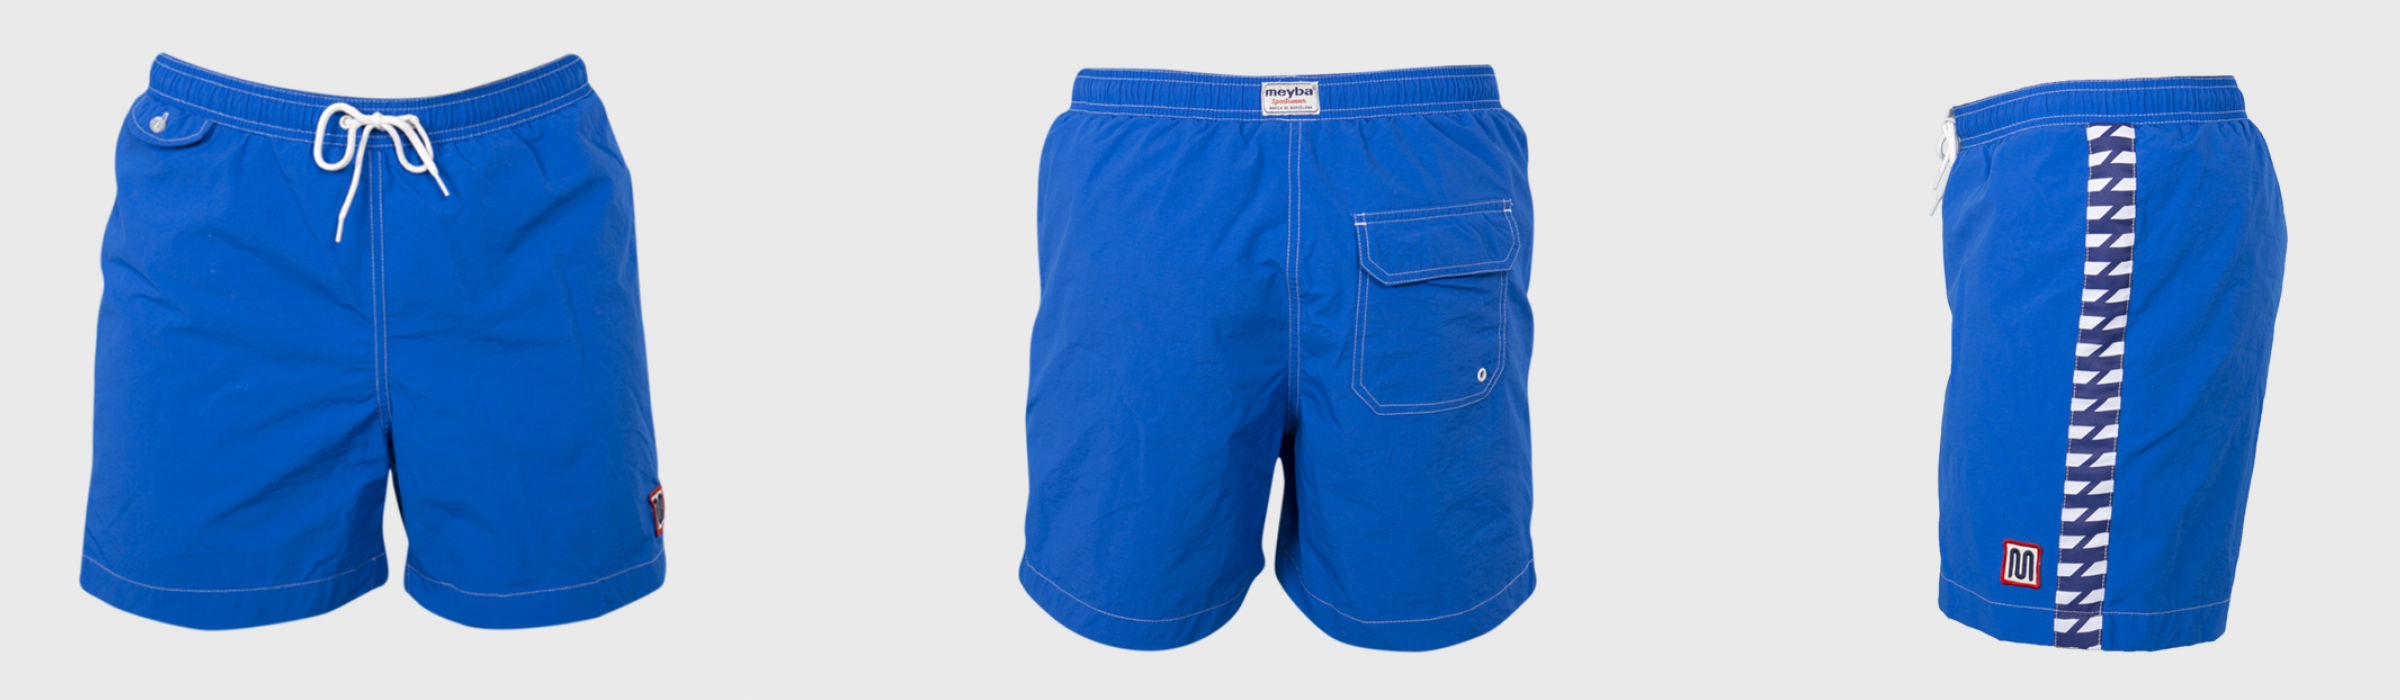 Cruyff Meyba Dreamteam Swimshort Royal Full